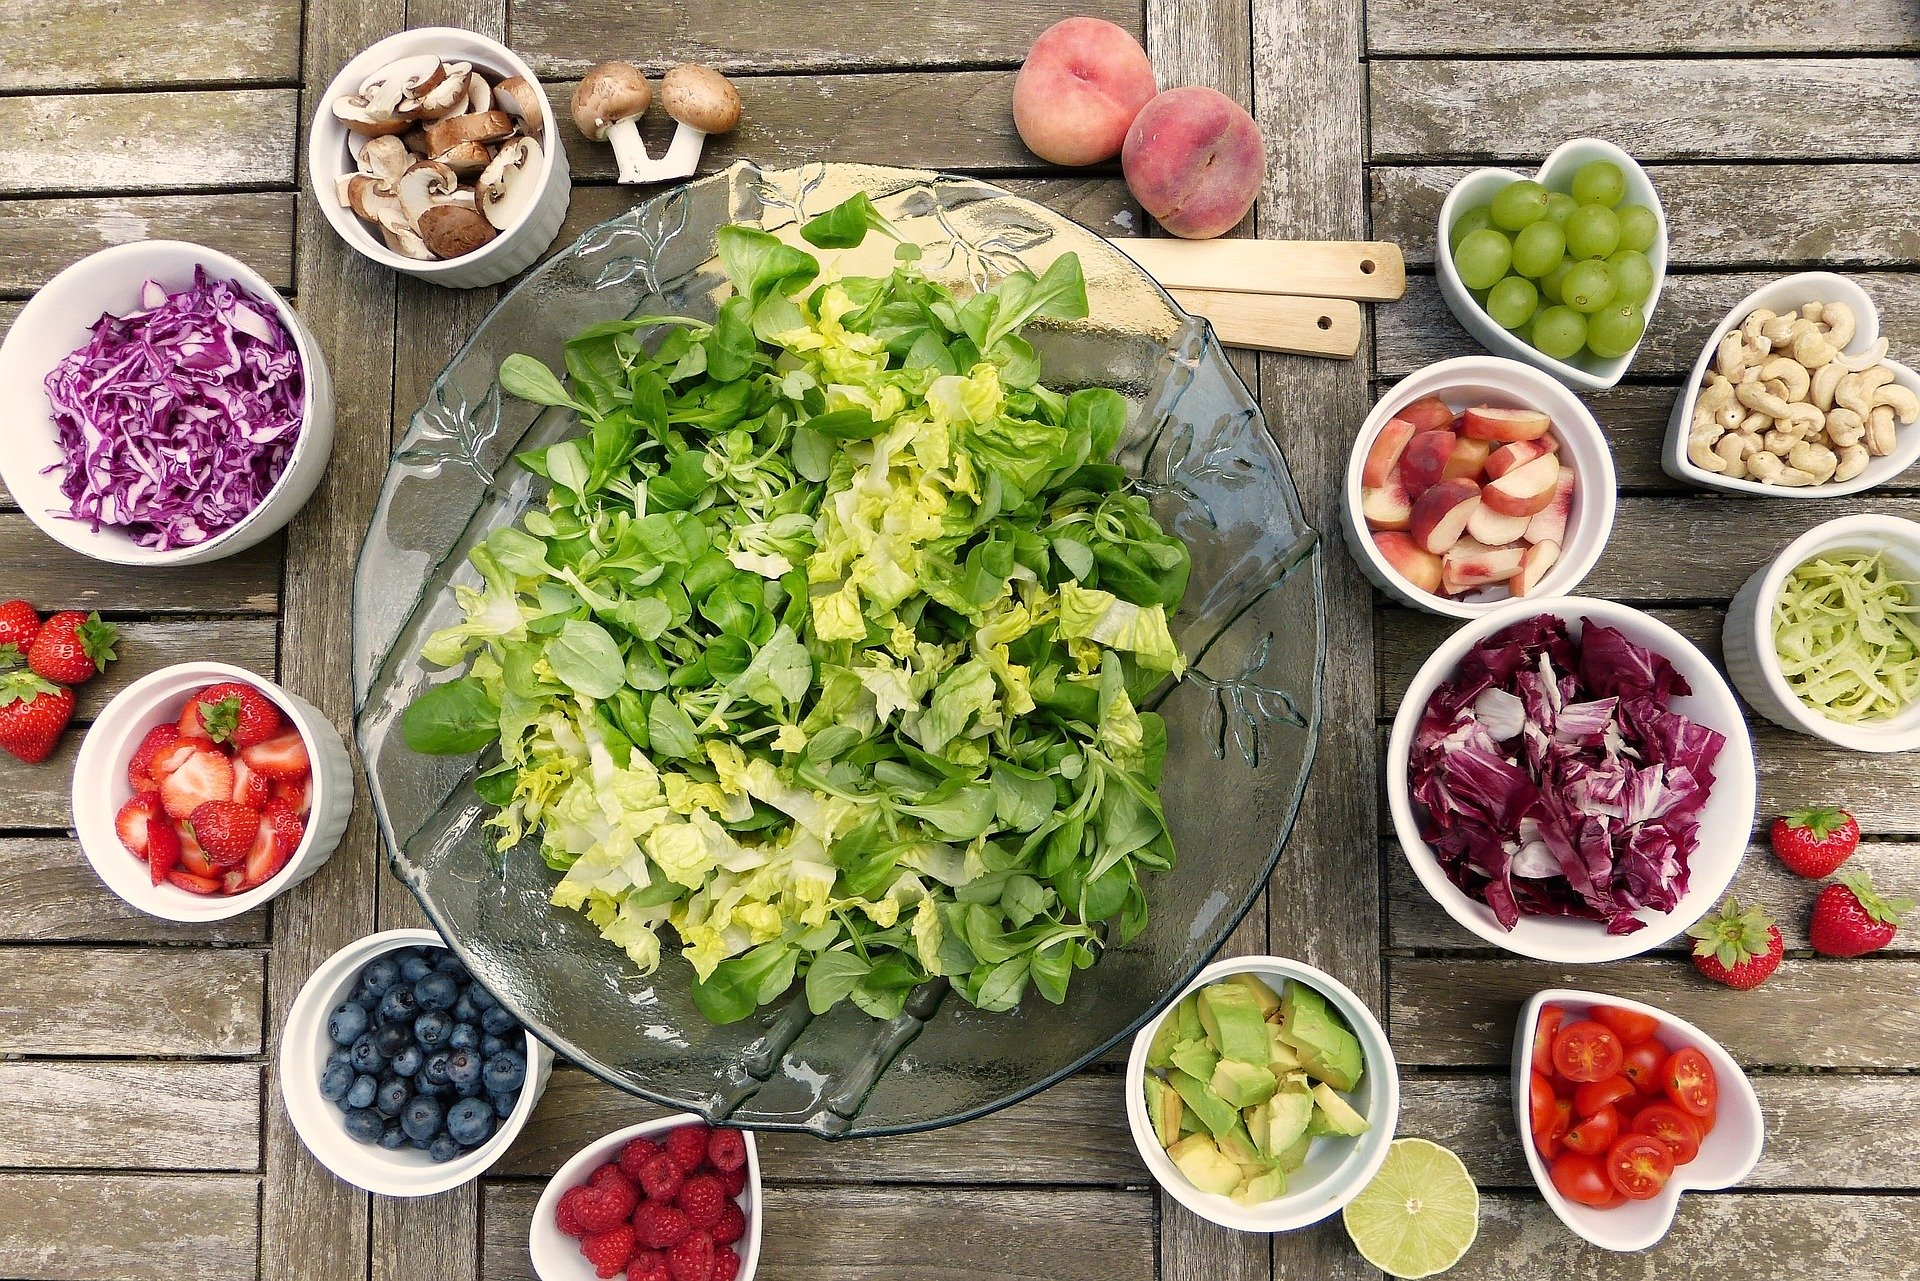 salad, fruits, vegetables